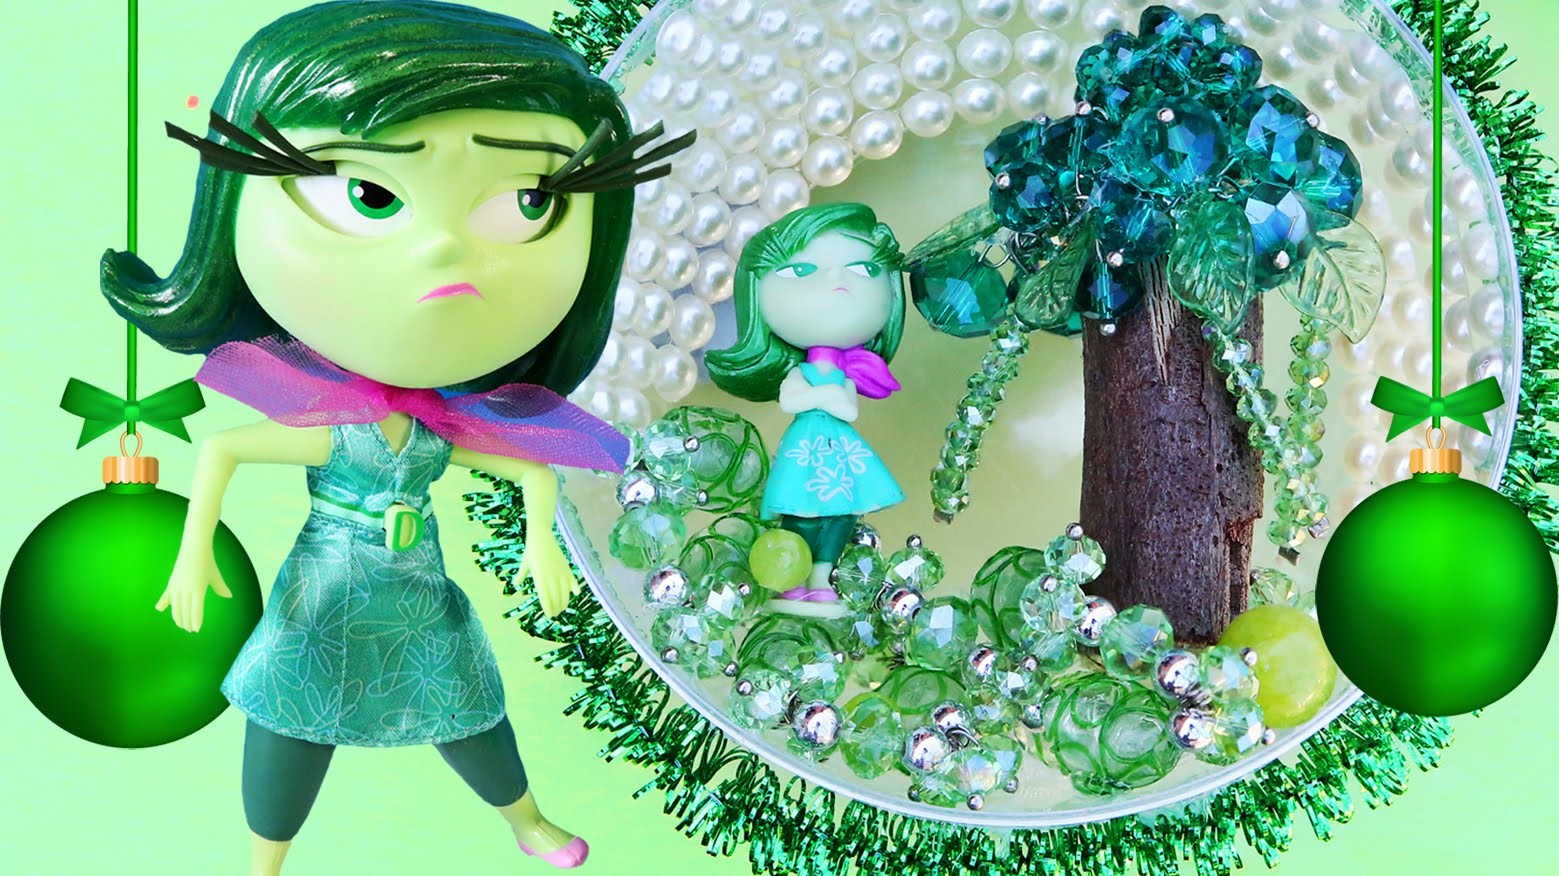 INSIDE OUT DISGUST CHRISTMAS Broccoli Tree Bauble Ornament Make Your Own Decorations Beads Gems